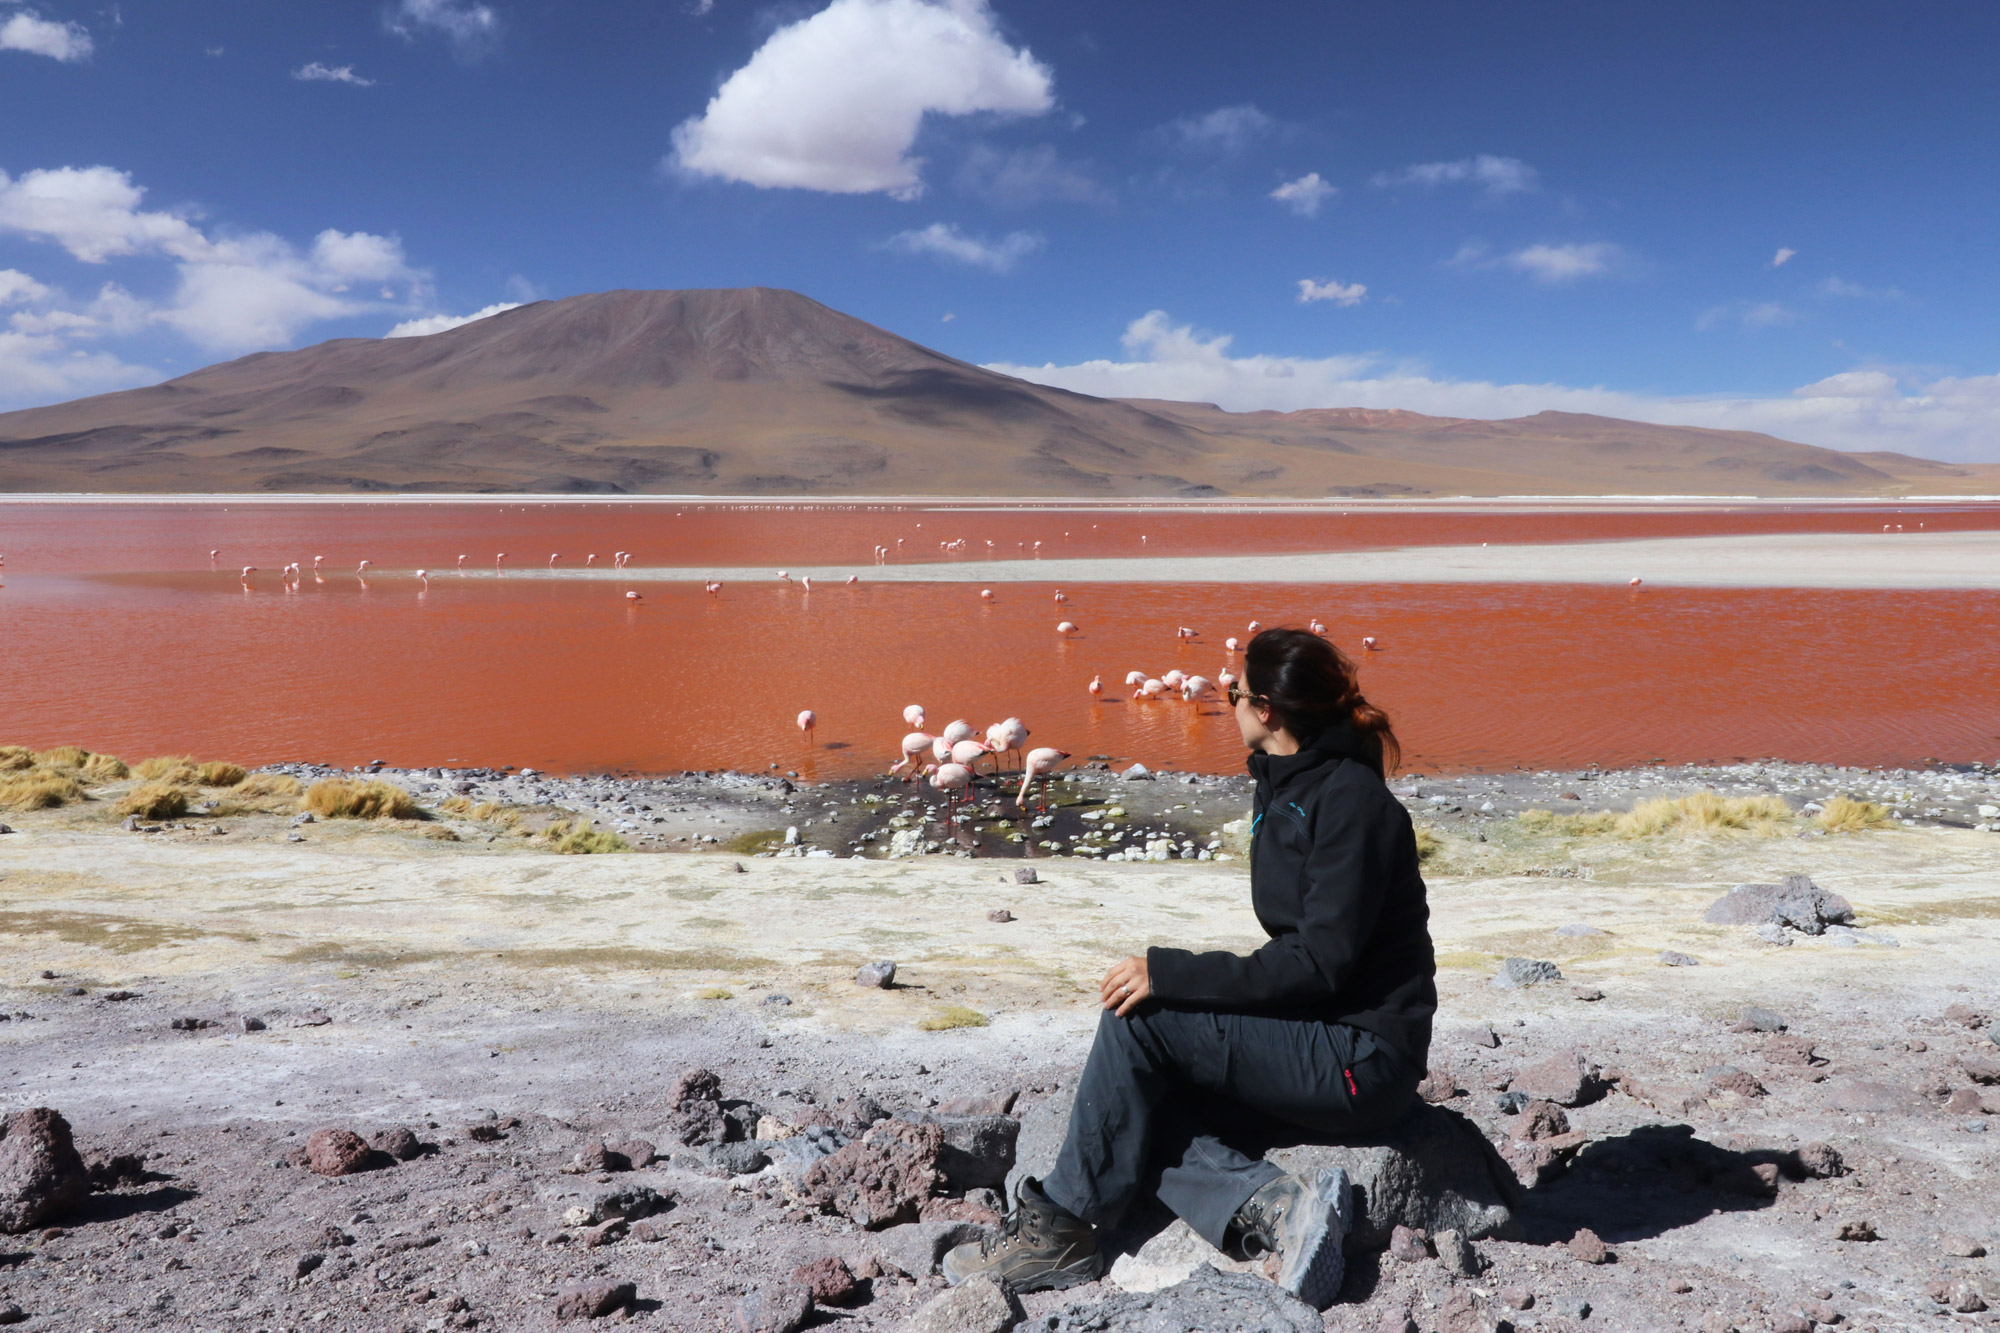 Noreen - Bolivia - Laguna Colorada